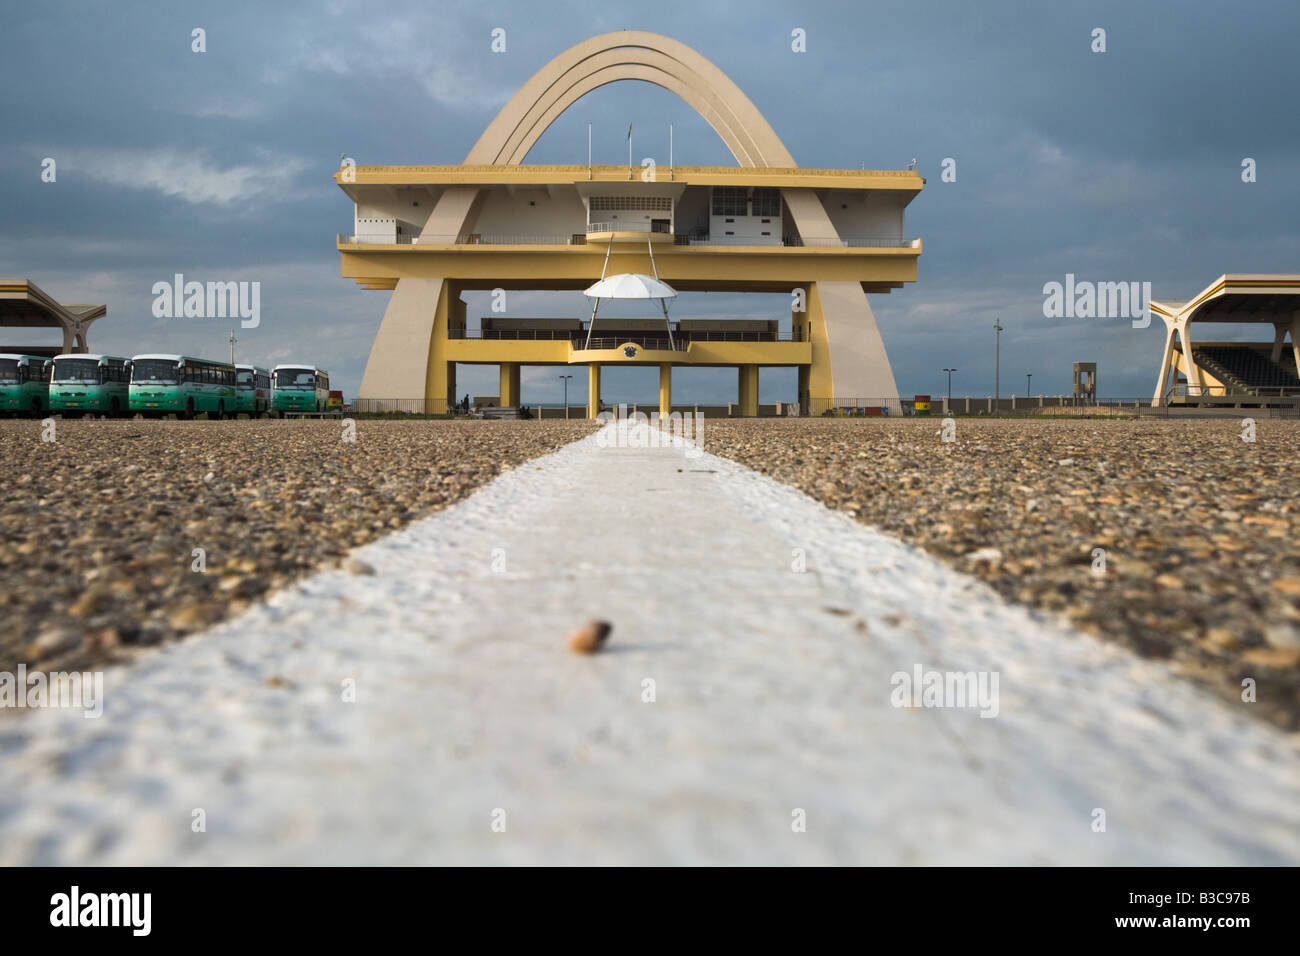 View of Independence square in Accra Ghana Stock Photo